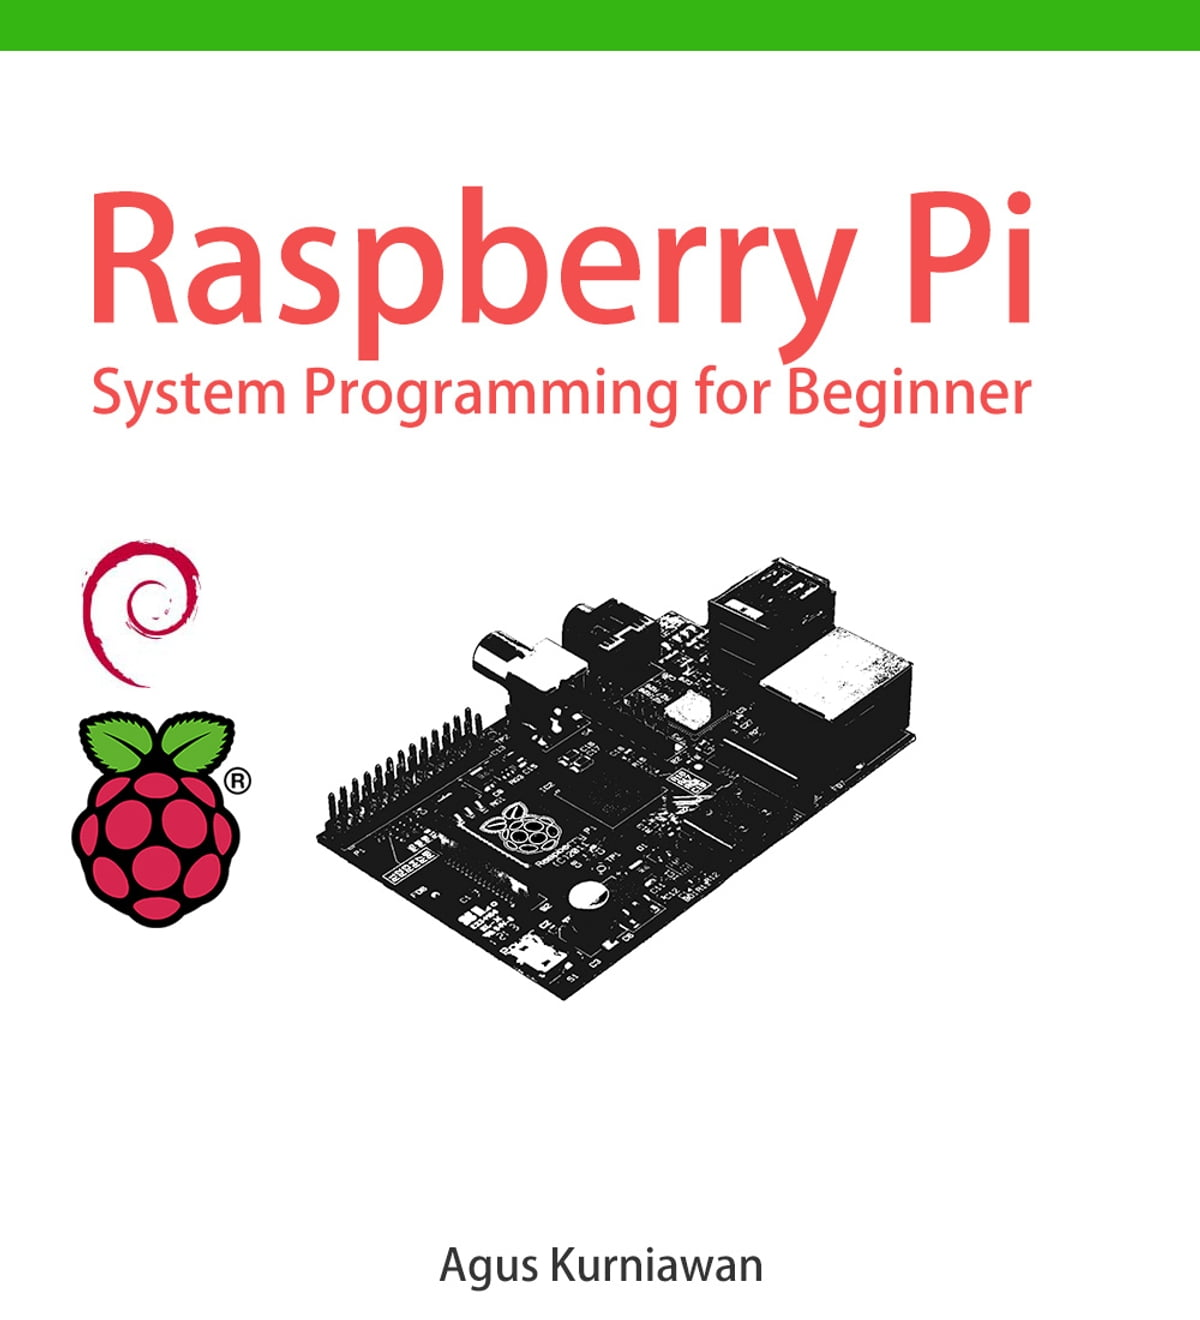 Raspberry Pi System Programming For Beginner Ebook By Agus Kurniawan Gpio Ruby Wiringpi 1230000235606 Rakuten Kobo